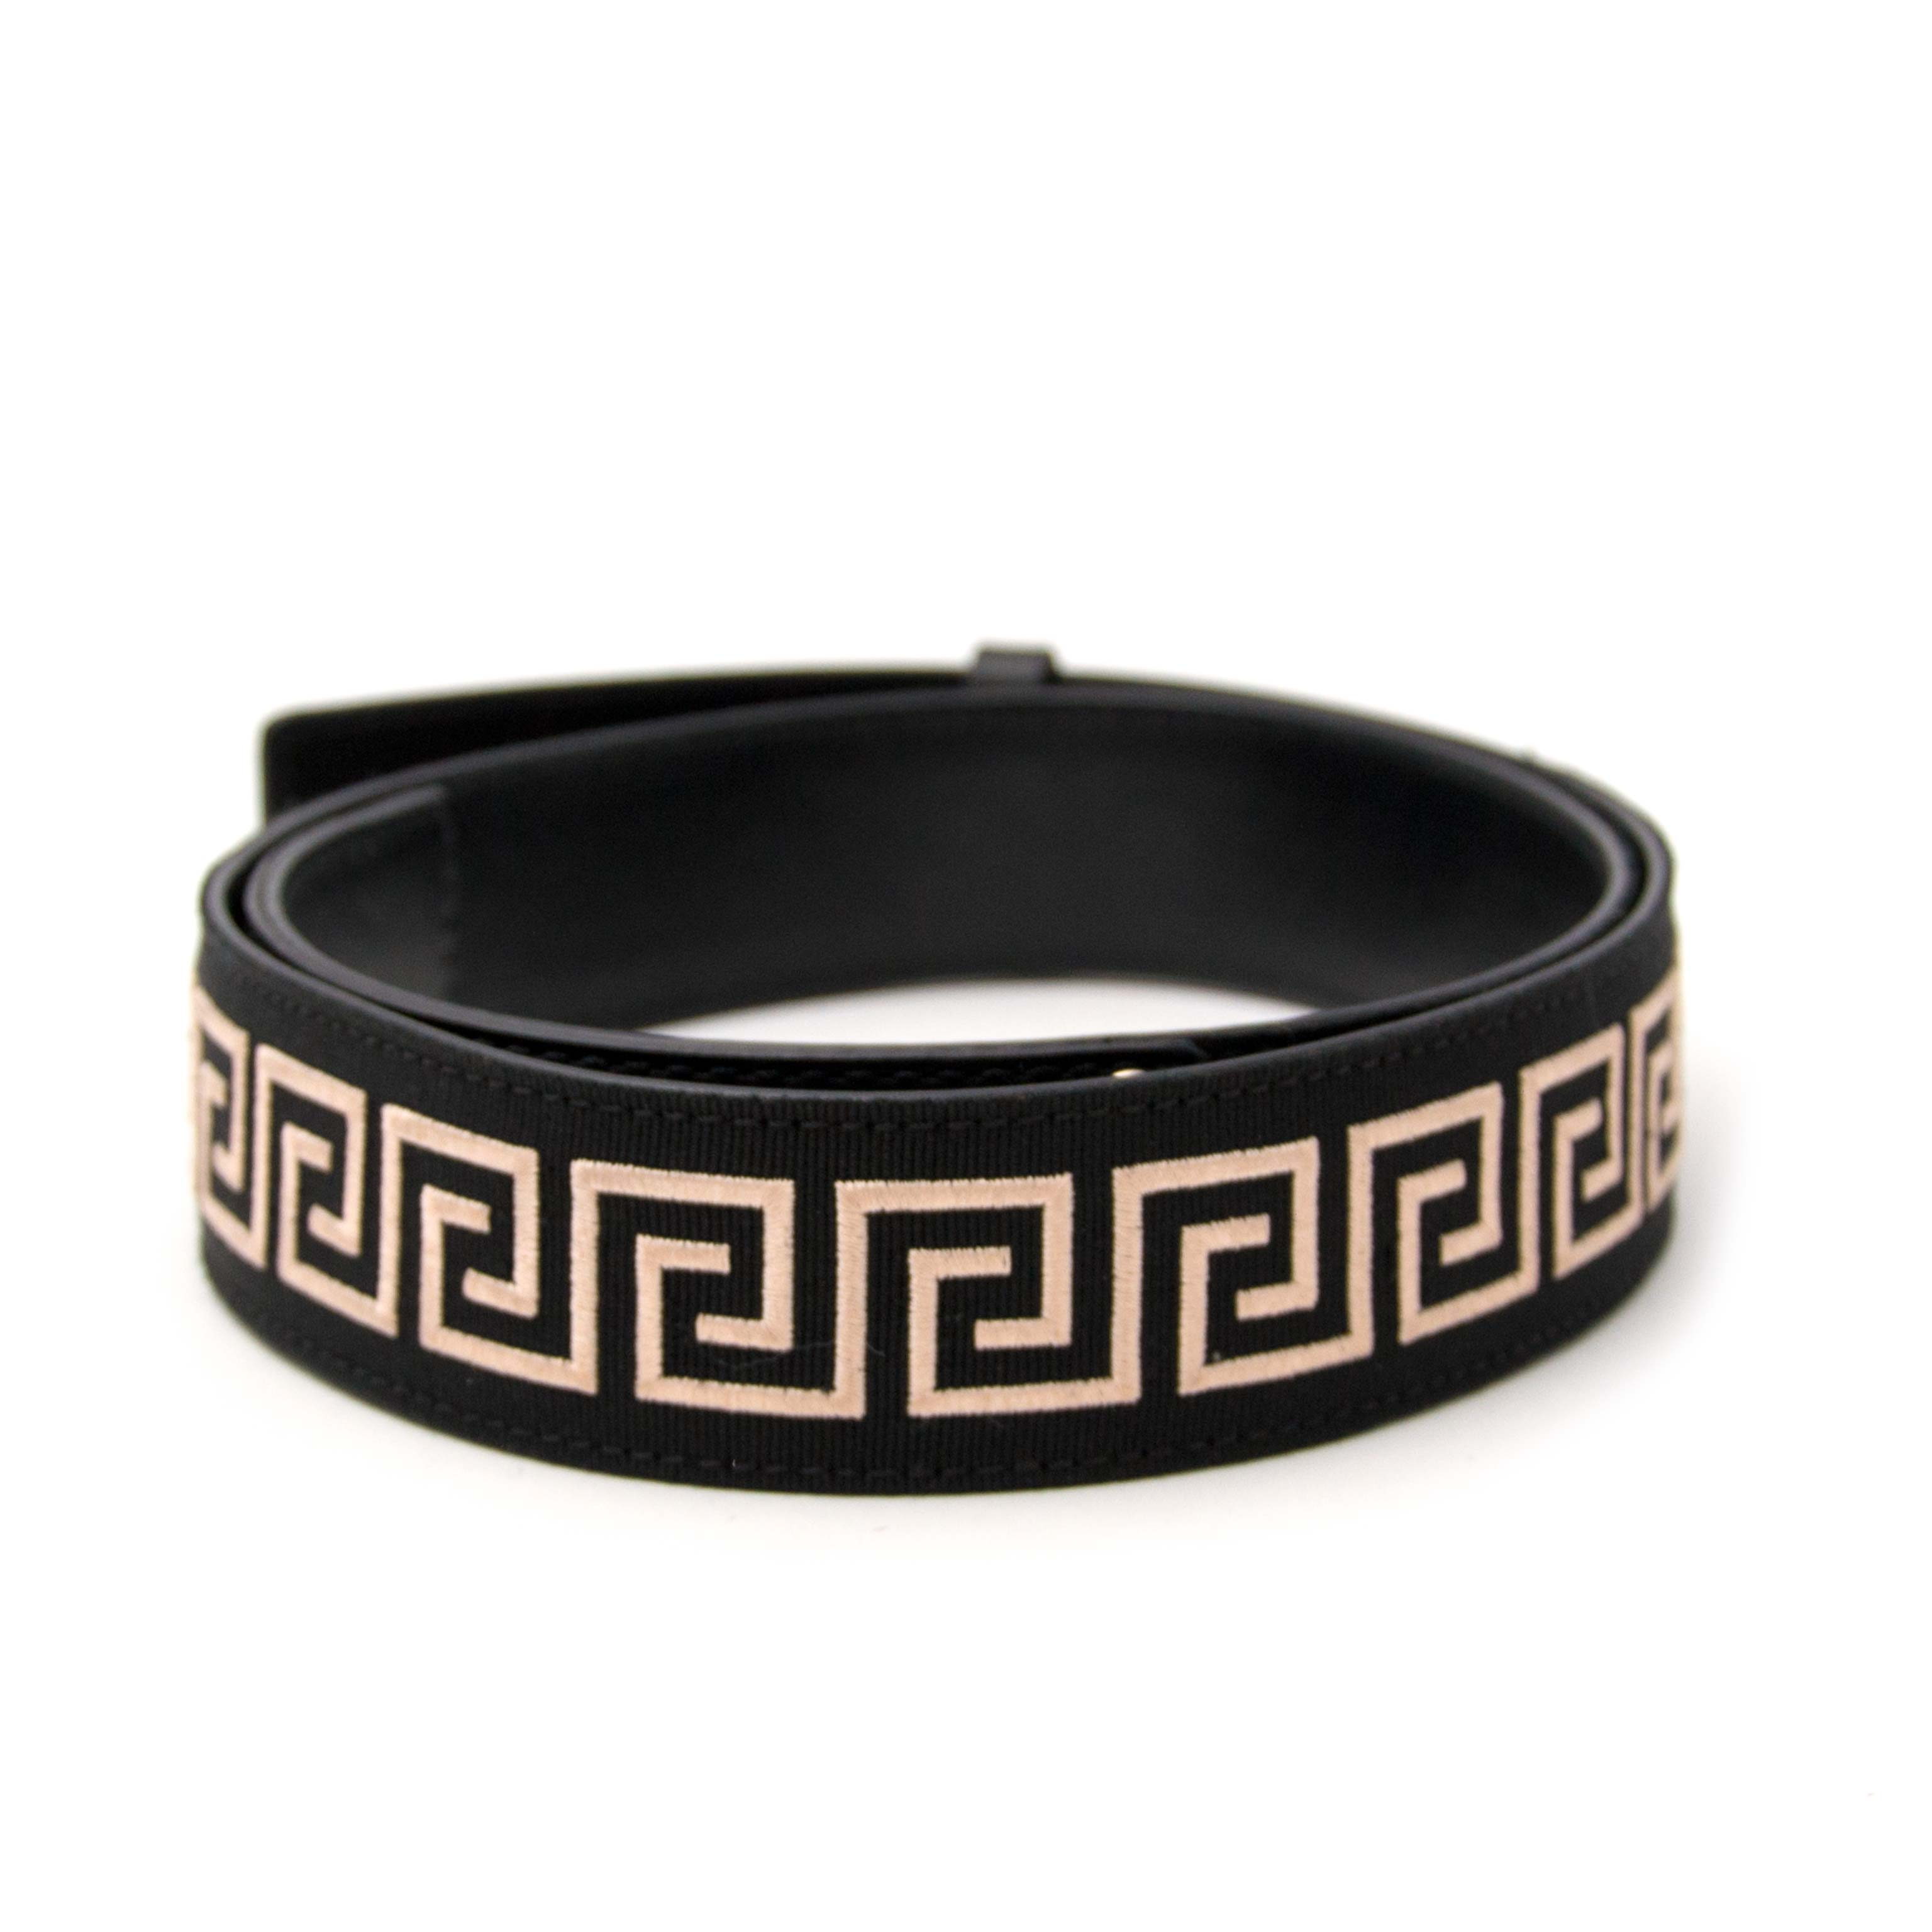 Versace Black Leather and Nylon Belt for sale online